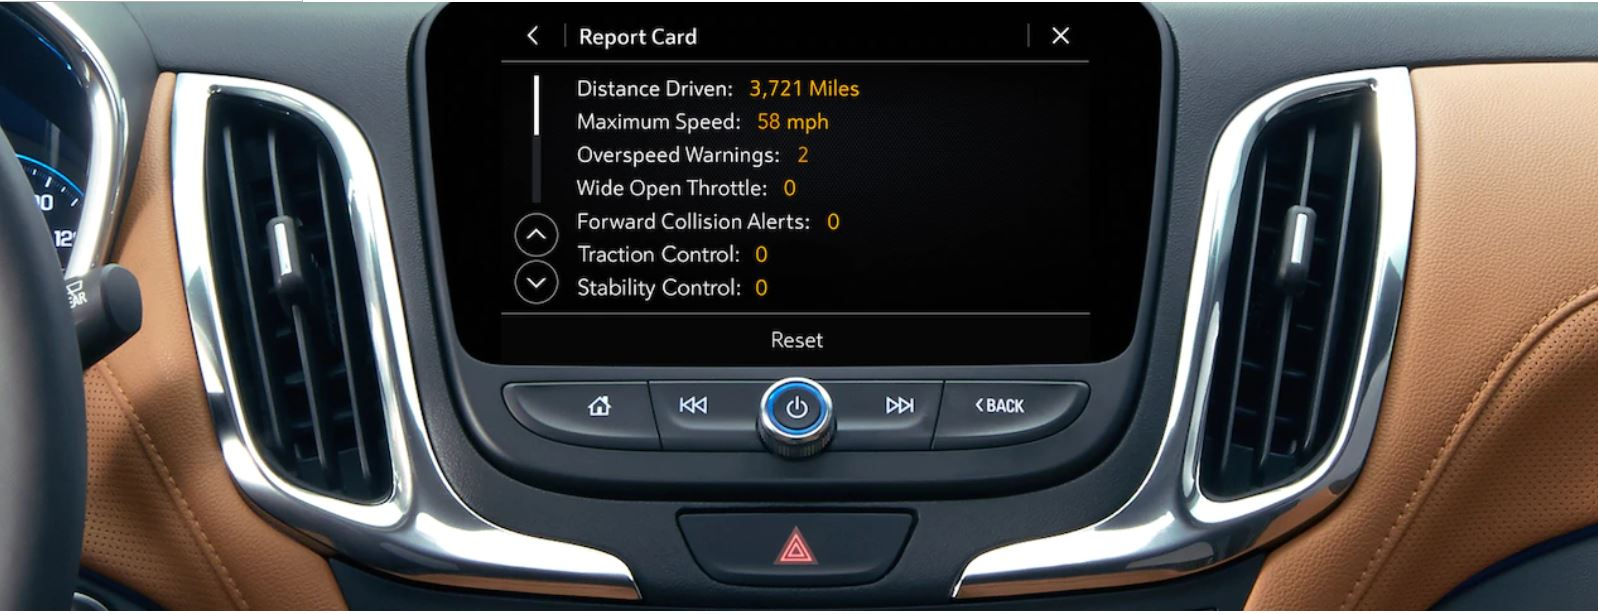 Tap into Your Media Quickly in the 2019 Equinox!